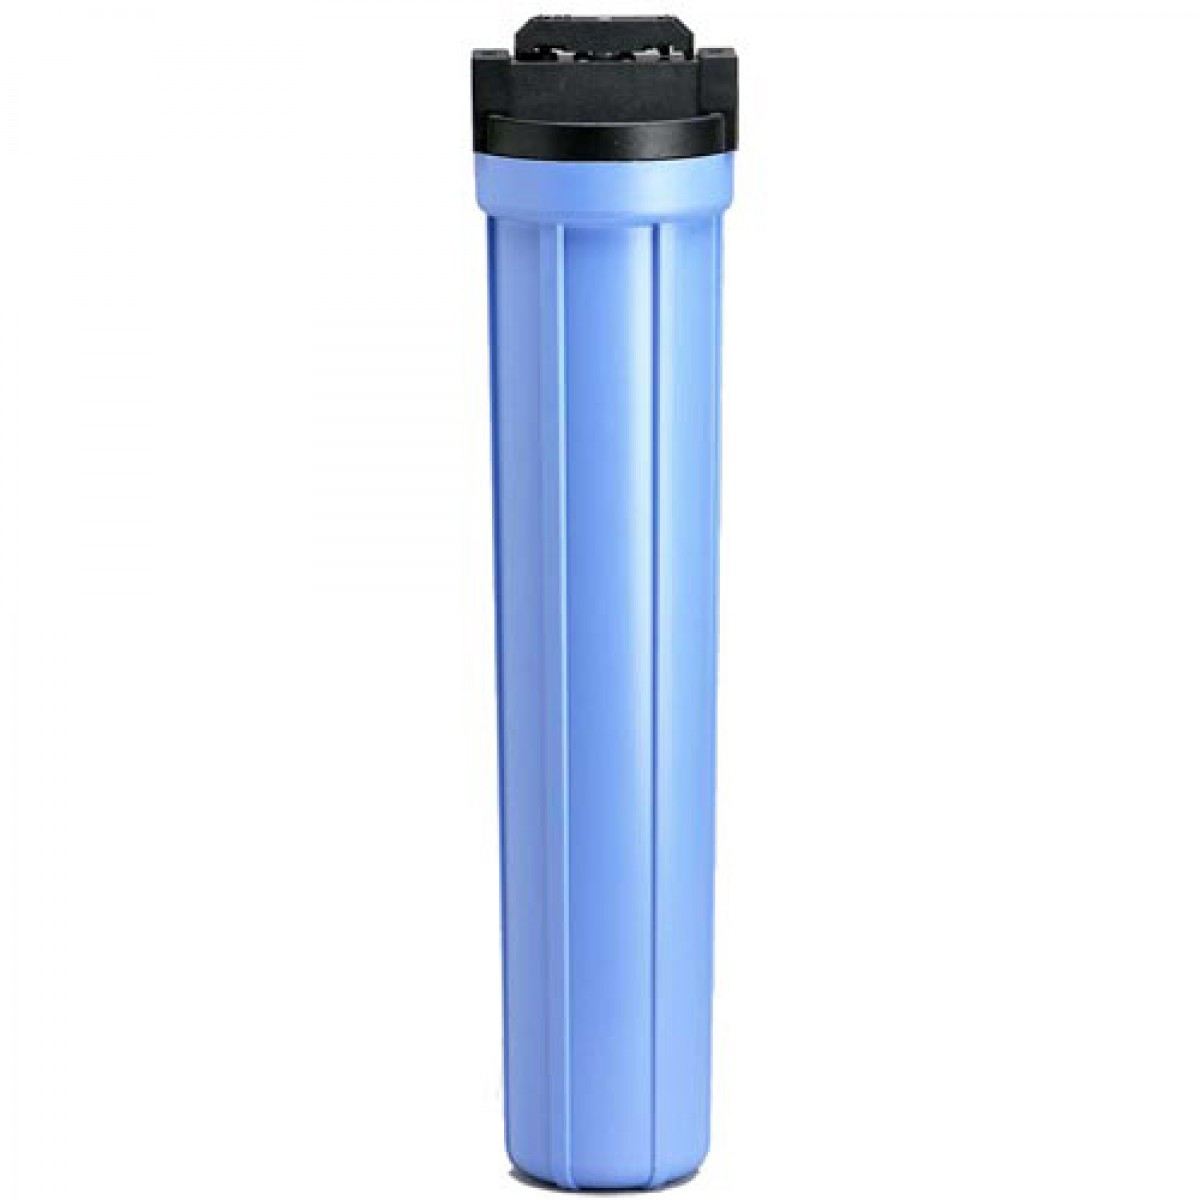 House Water Filter Pentek 20 St Whole House Water Filter System